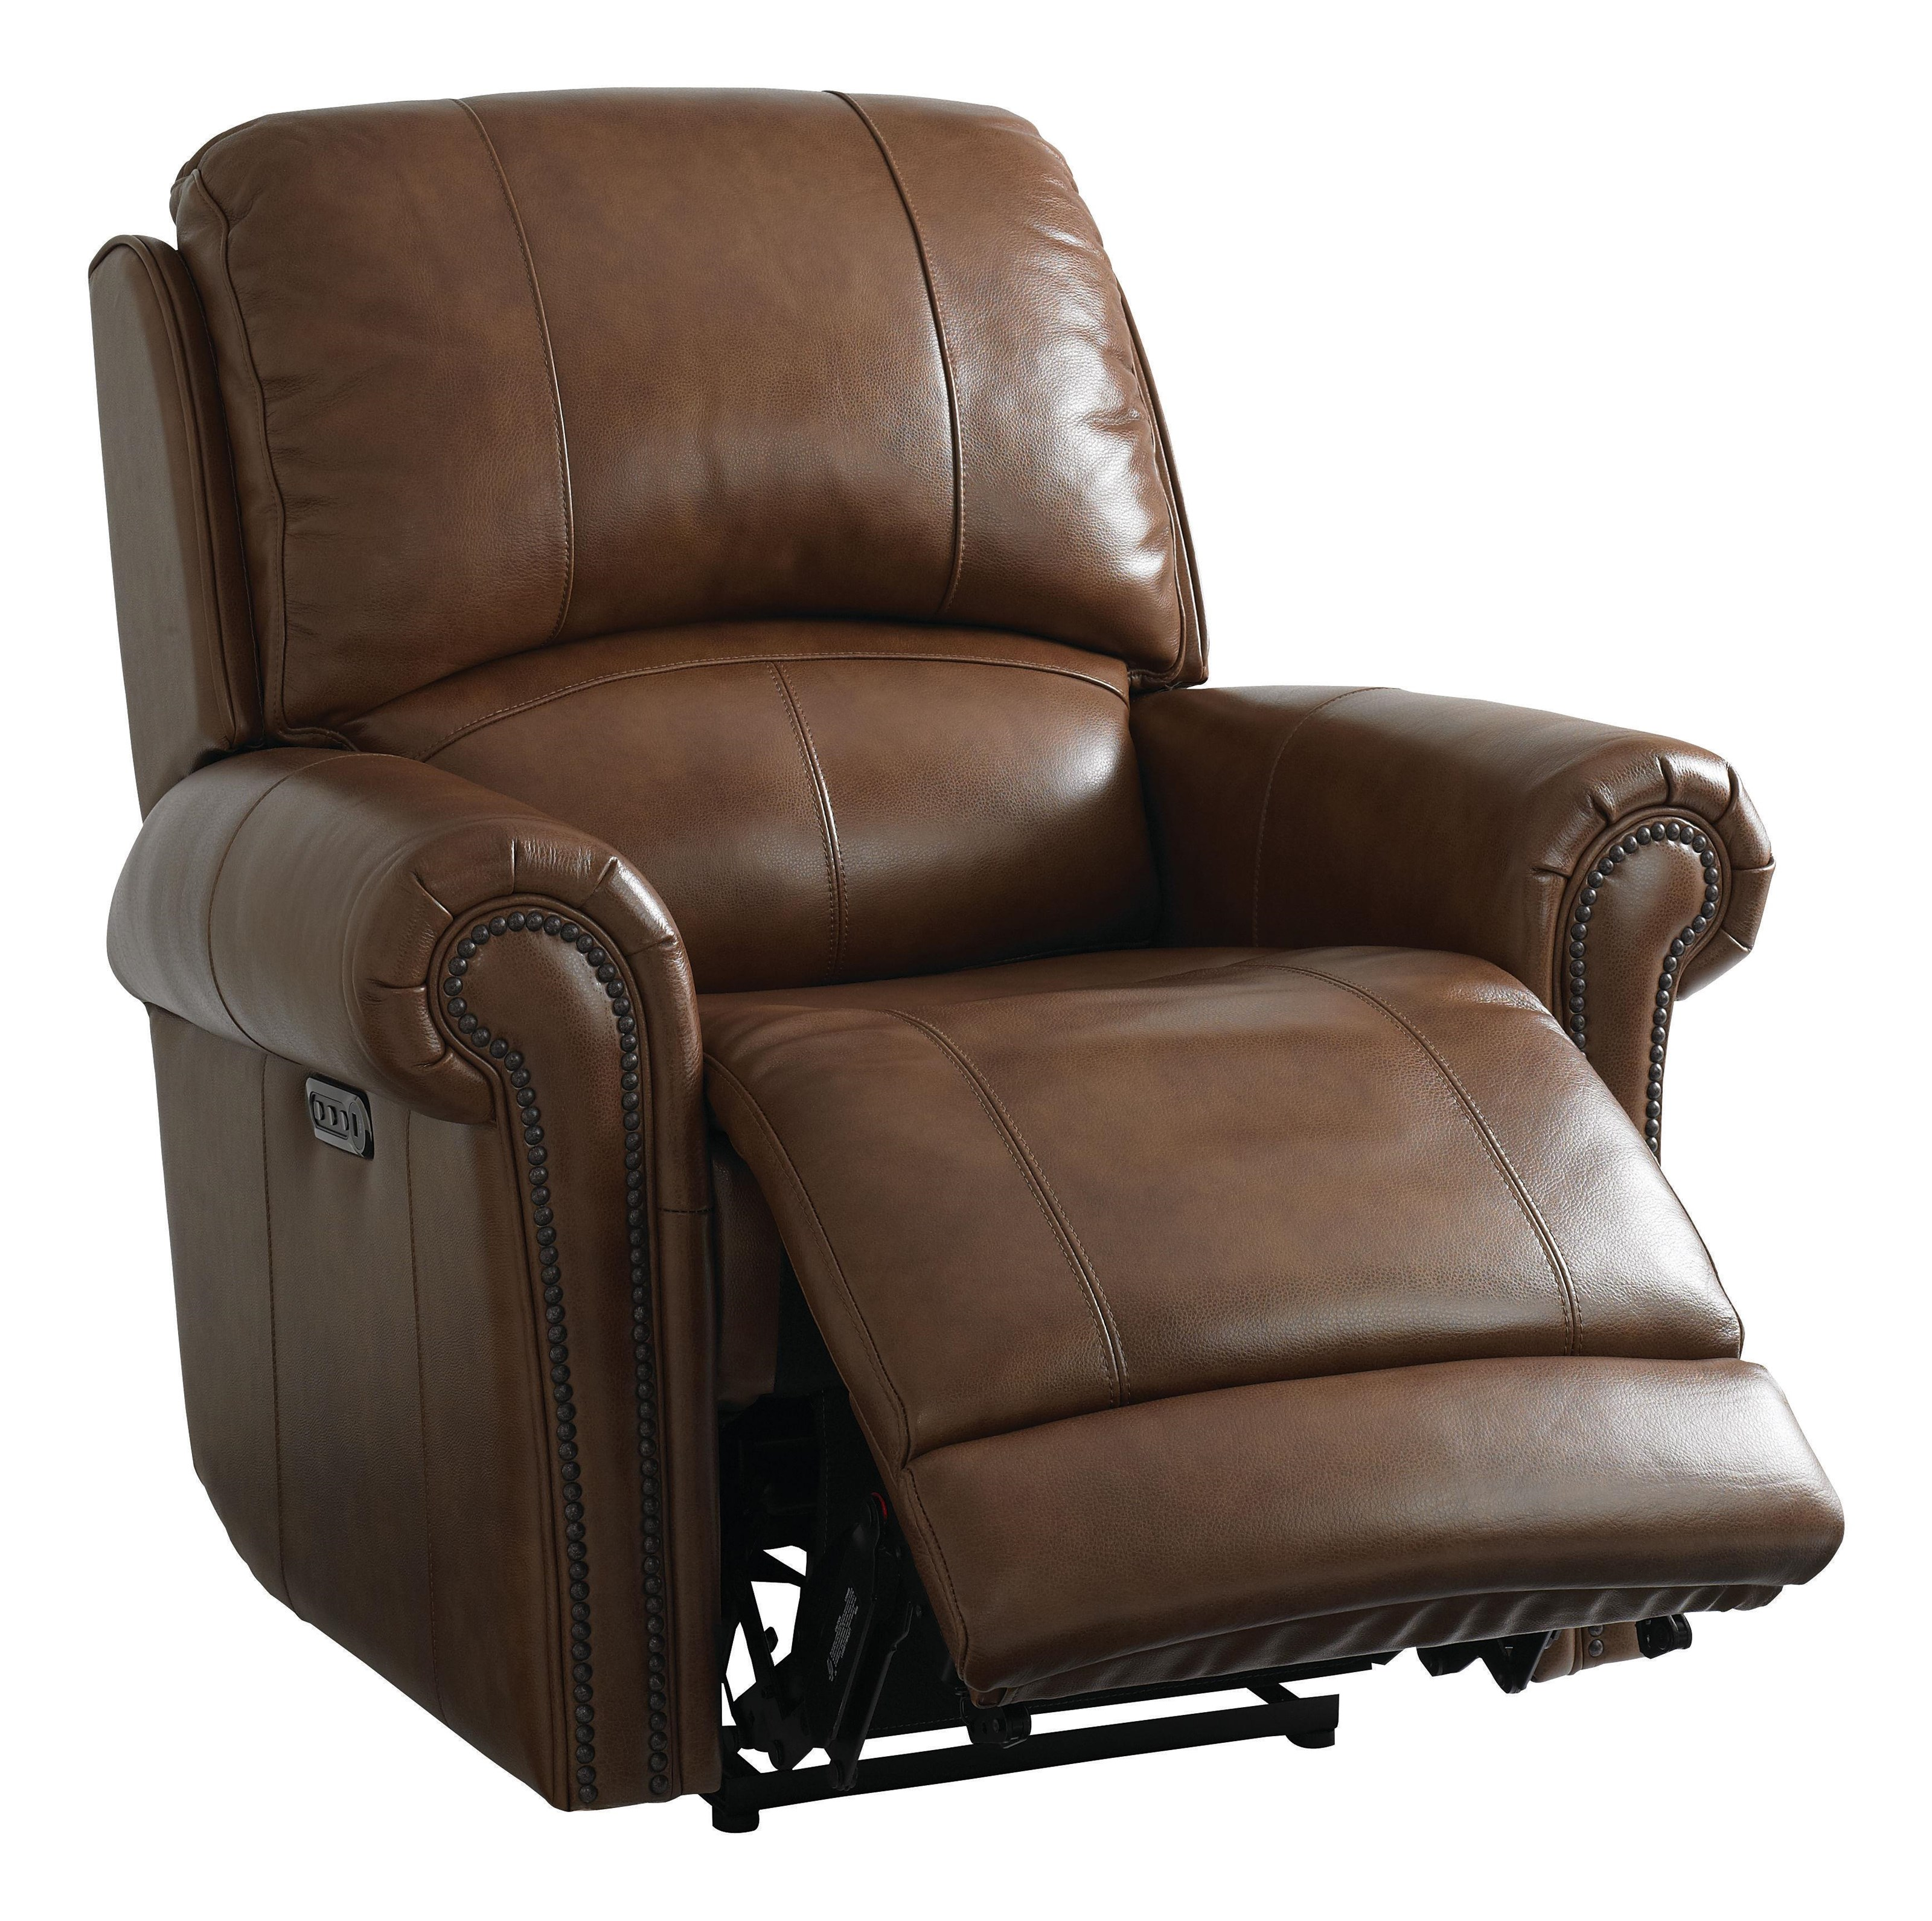 Bassett Club Level Recliner Olsen Power Leather Recliner W/ Head, Foot, - Item Number: 3511-P0UD